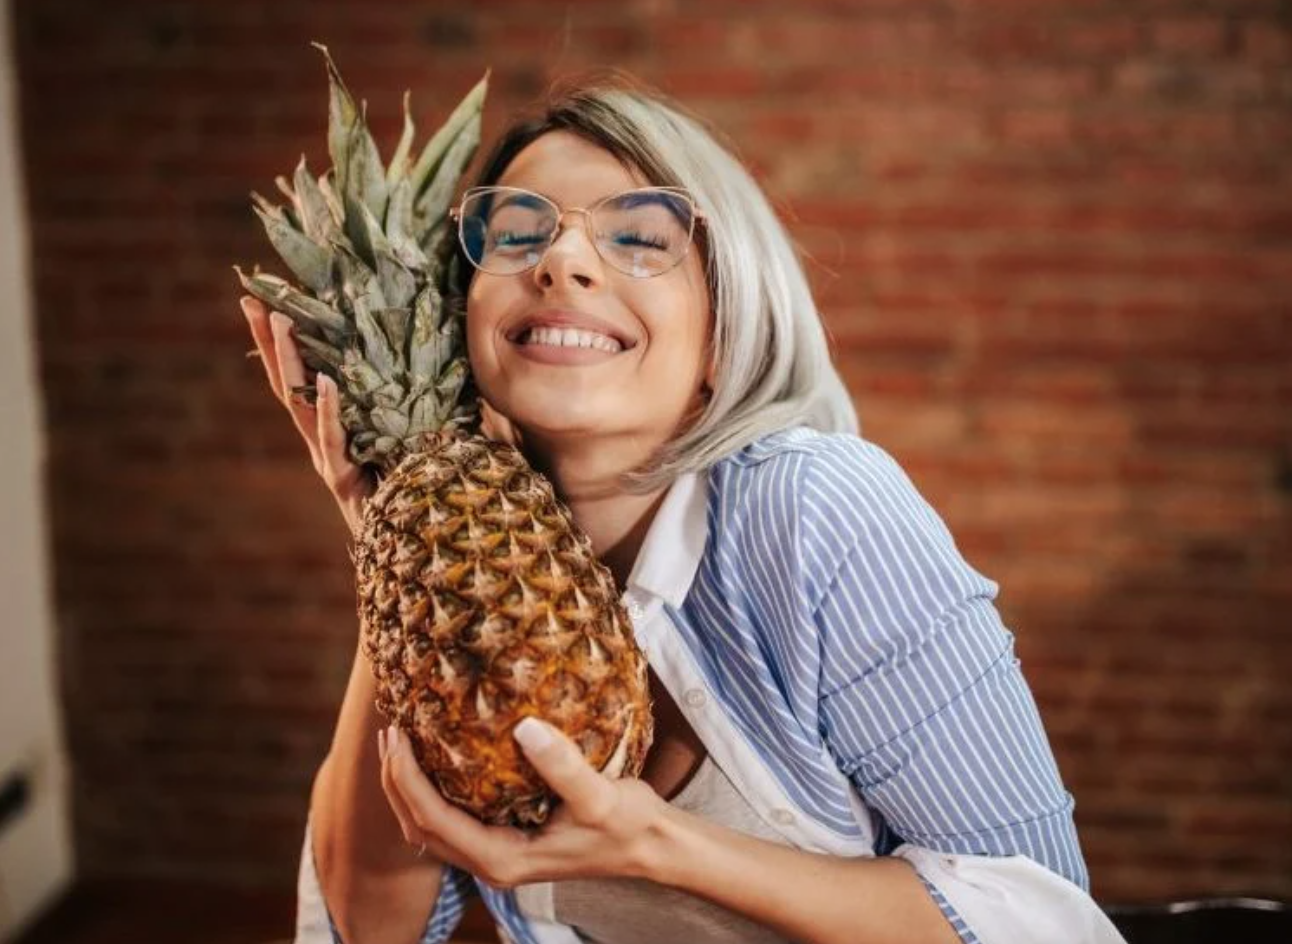 FBI Discovers Pineapples Full of Cocaine, Who Says Produce Can't Be Fun?